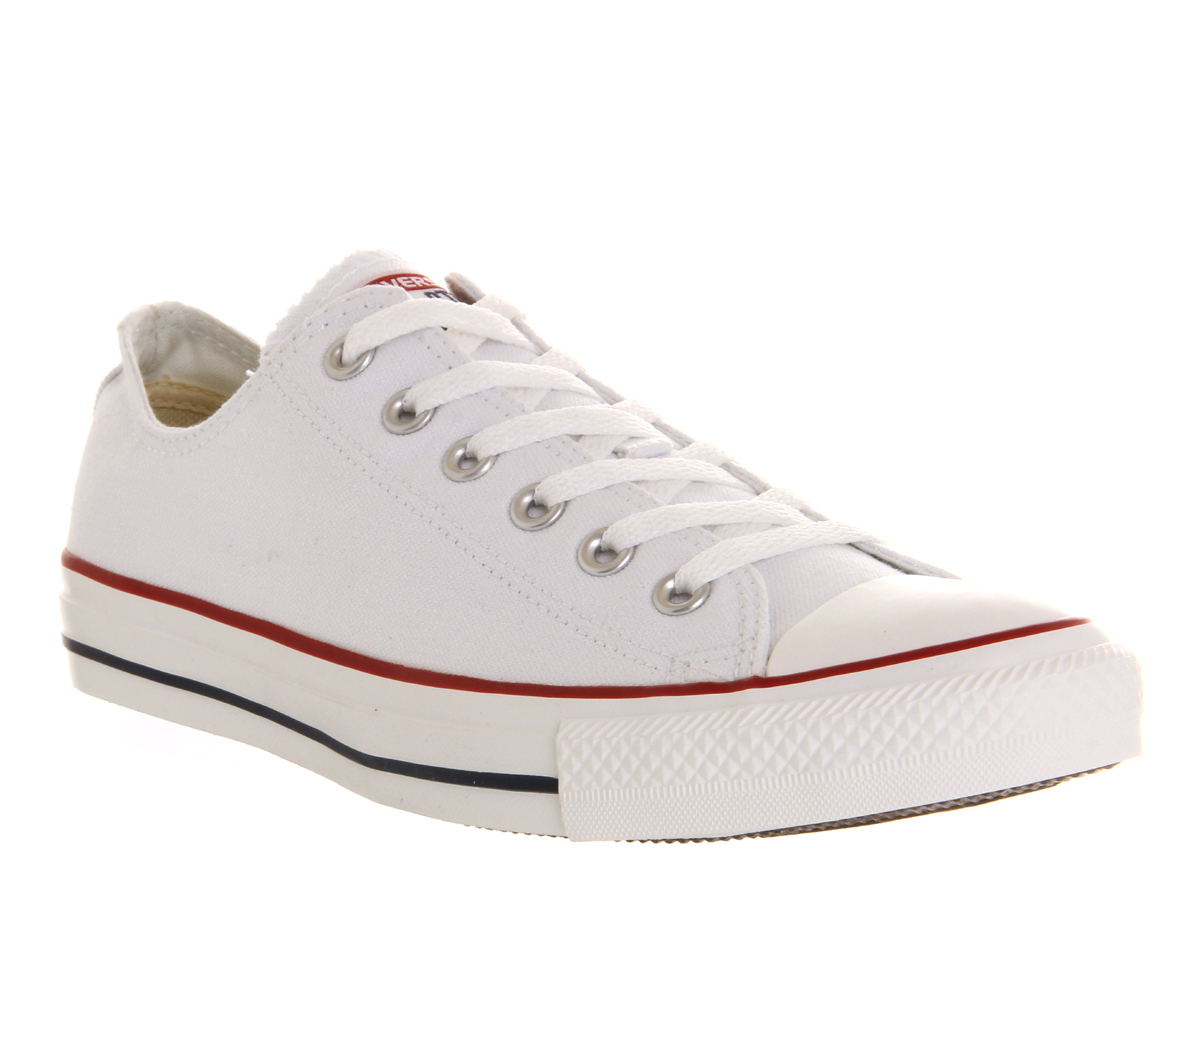 Converse converse all star low white canvas